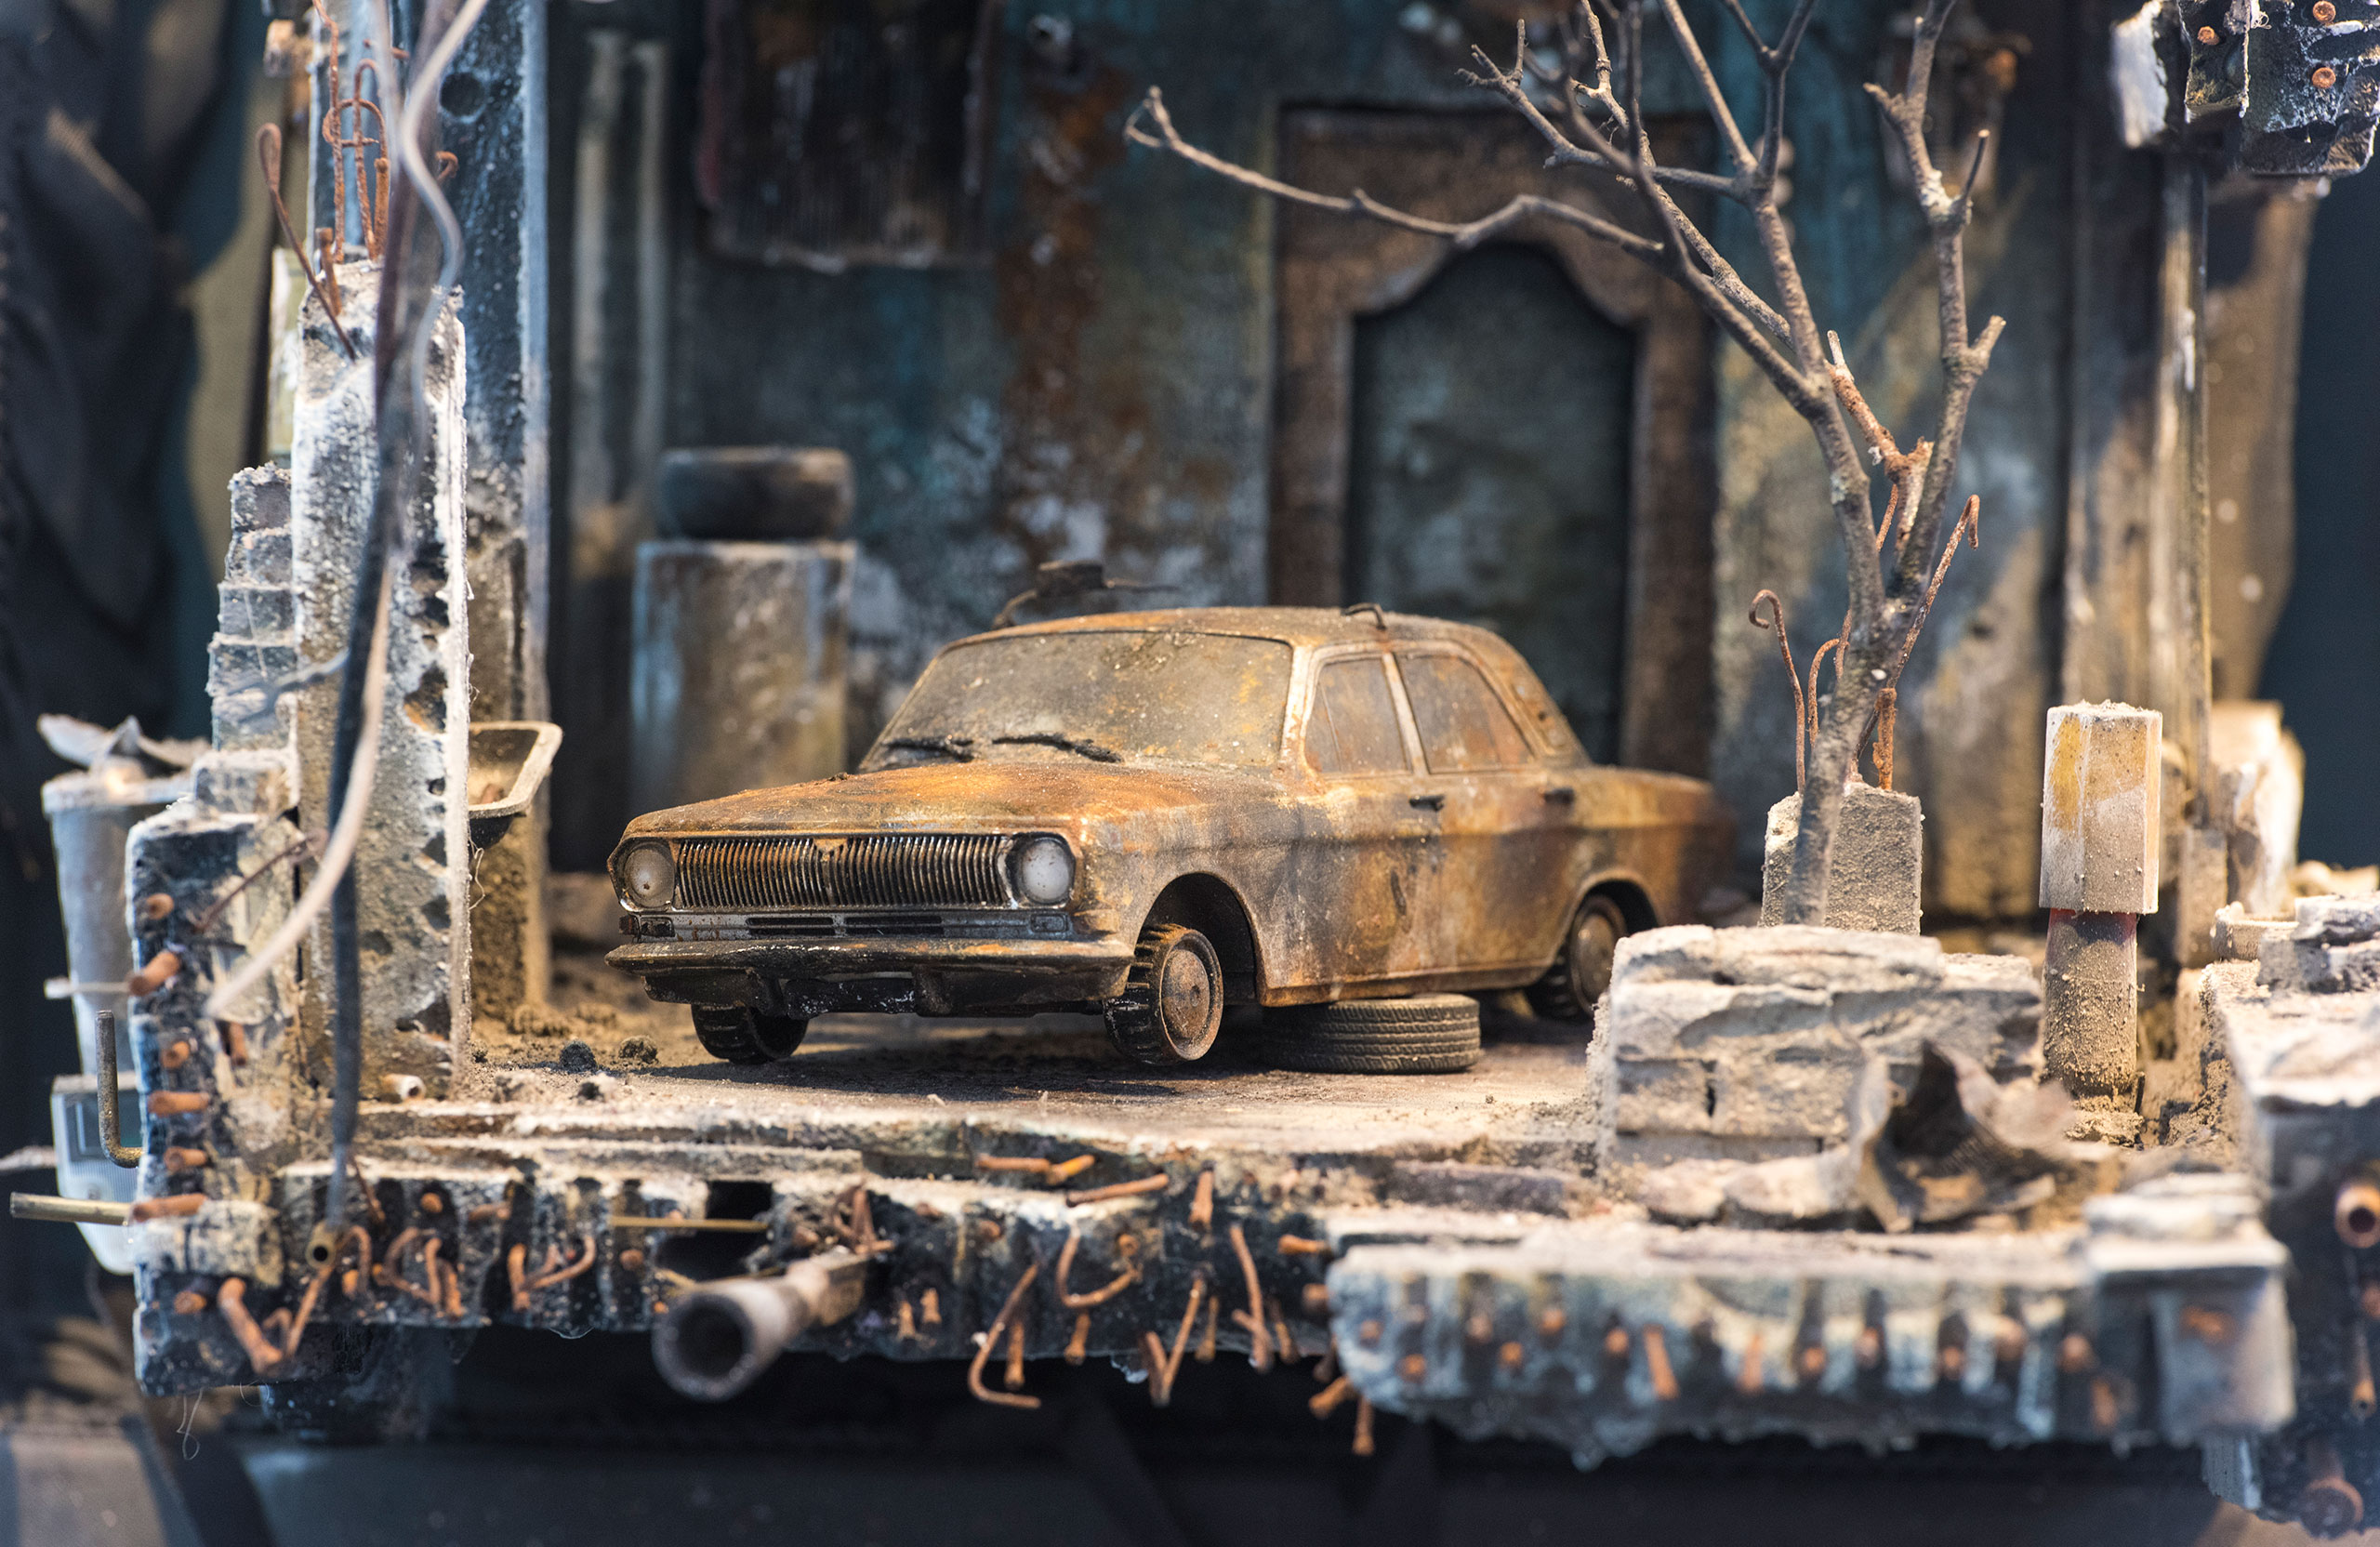 UM SHAHAM: War and a Burnt Car. Photo by Rodney Nelson.